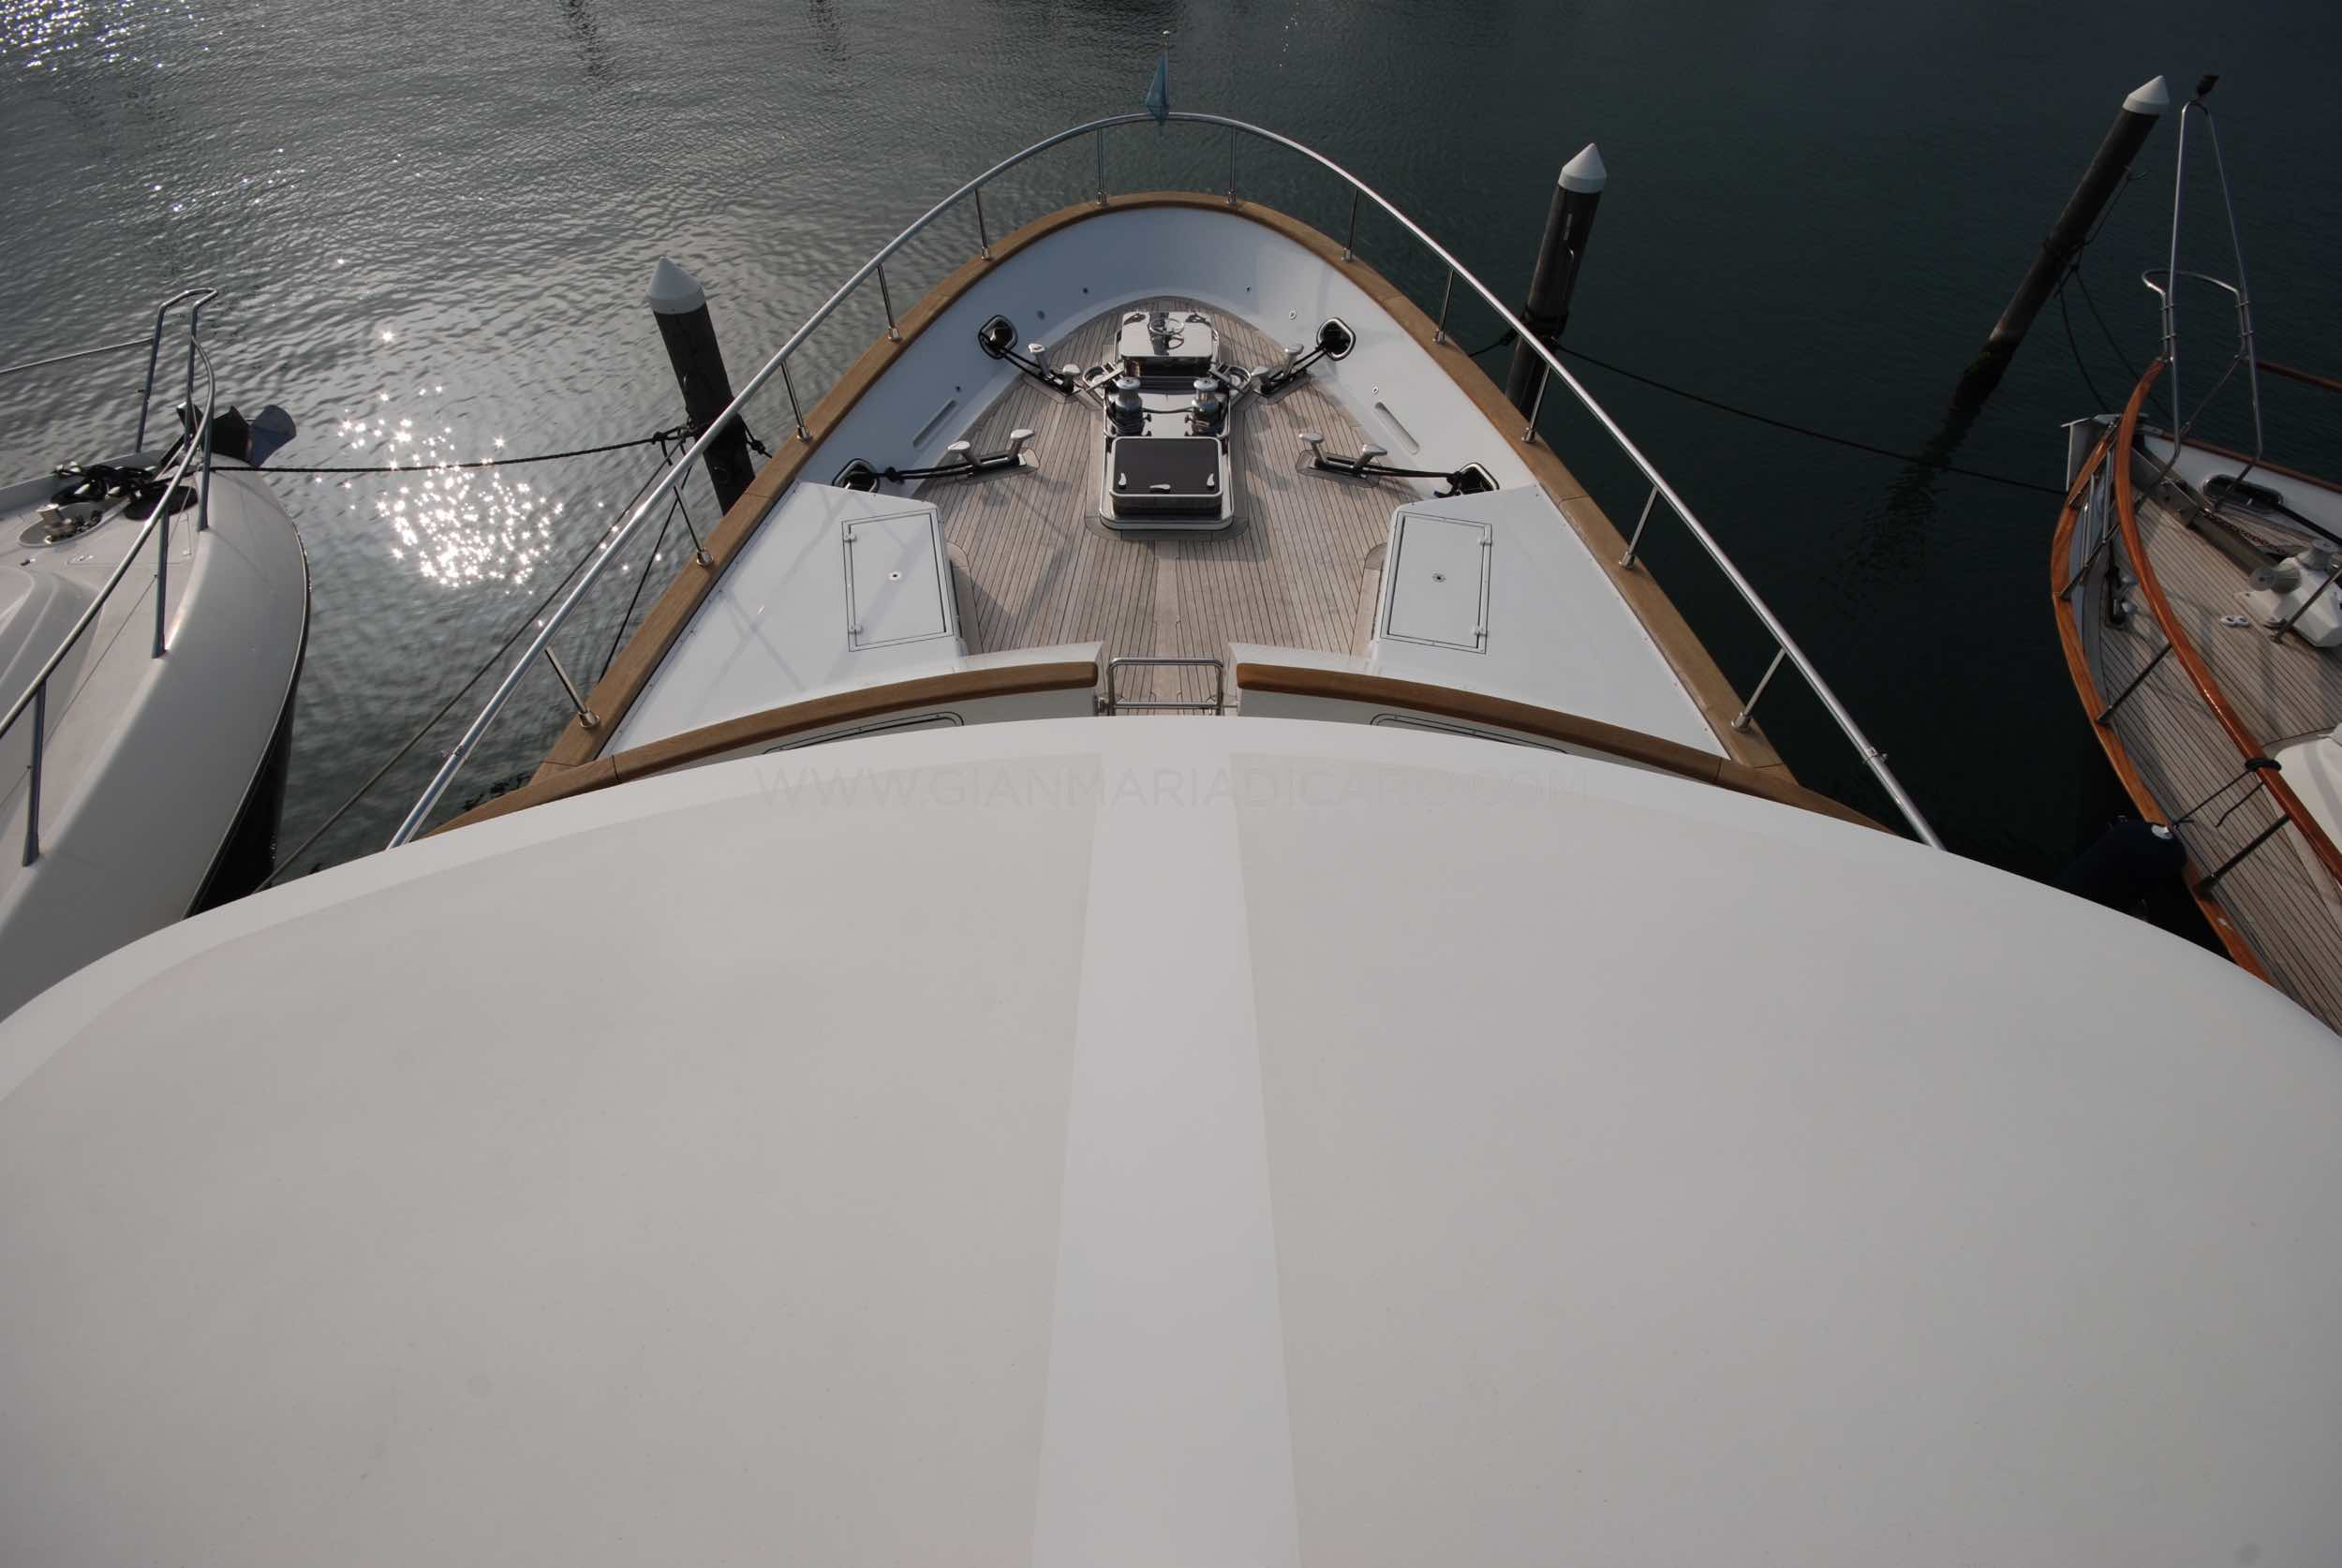 emys-yacht-22-unica-for-sale-105.jpg